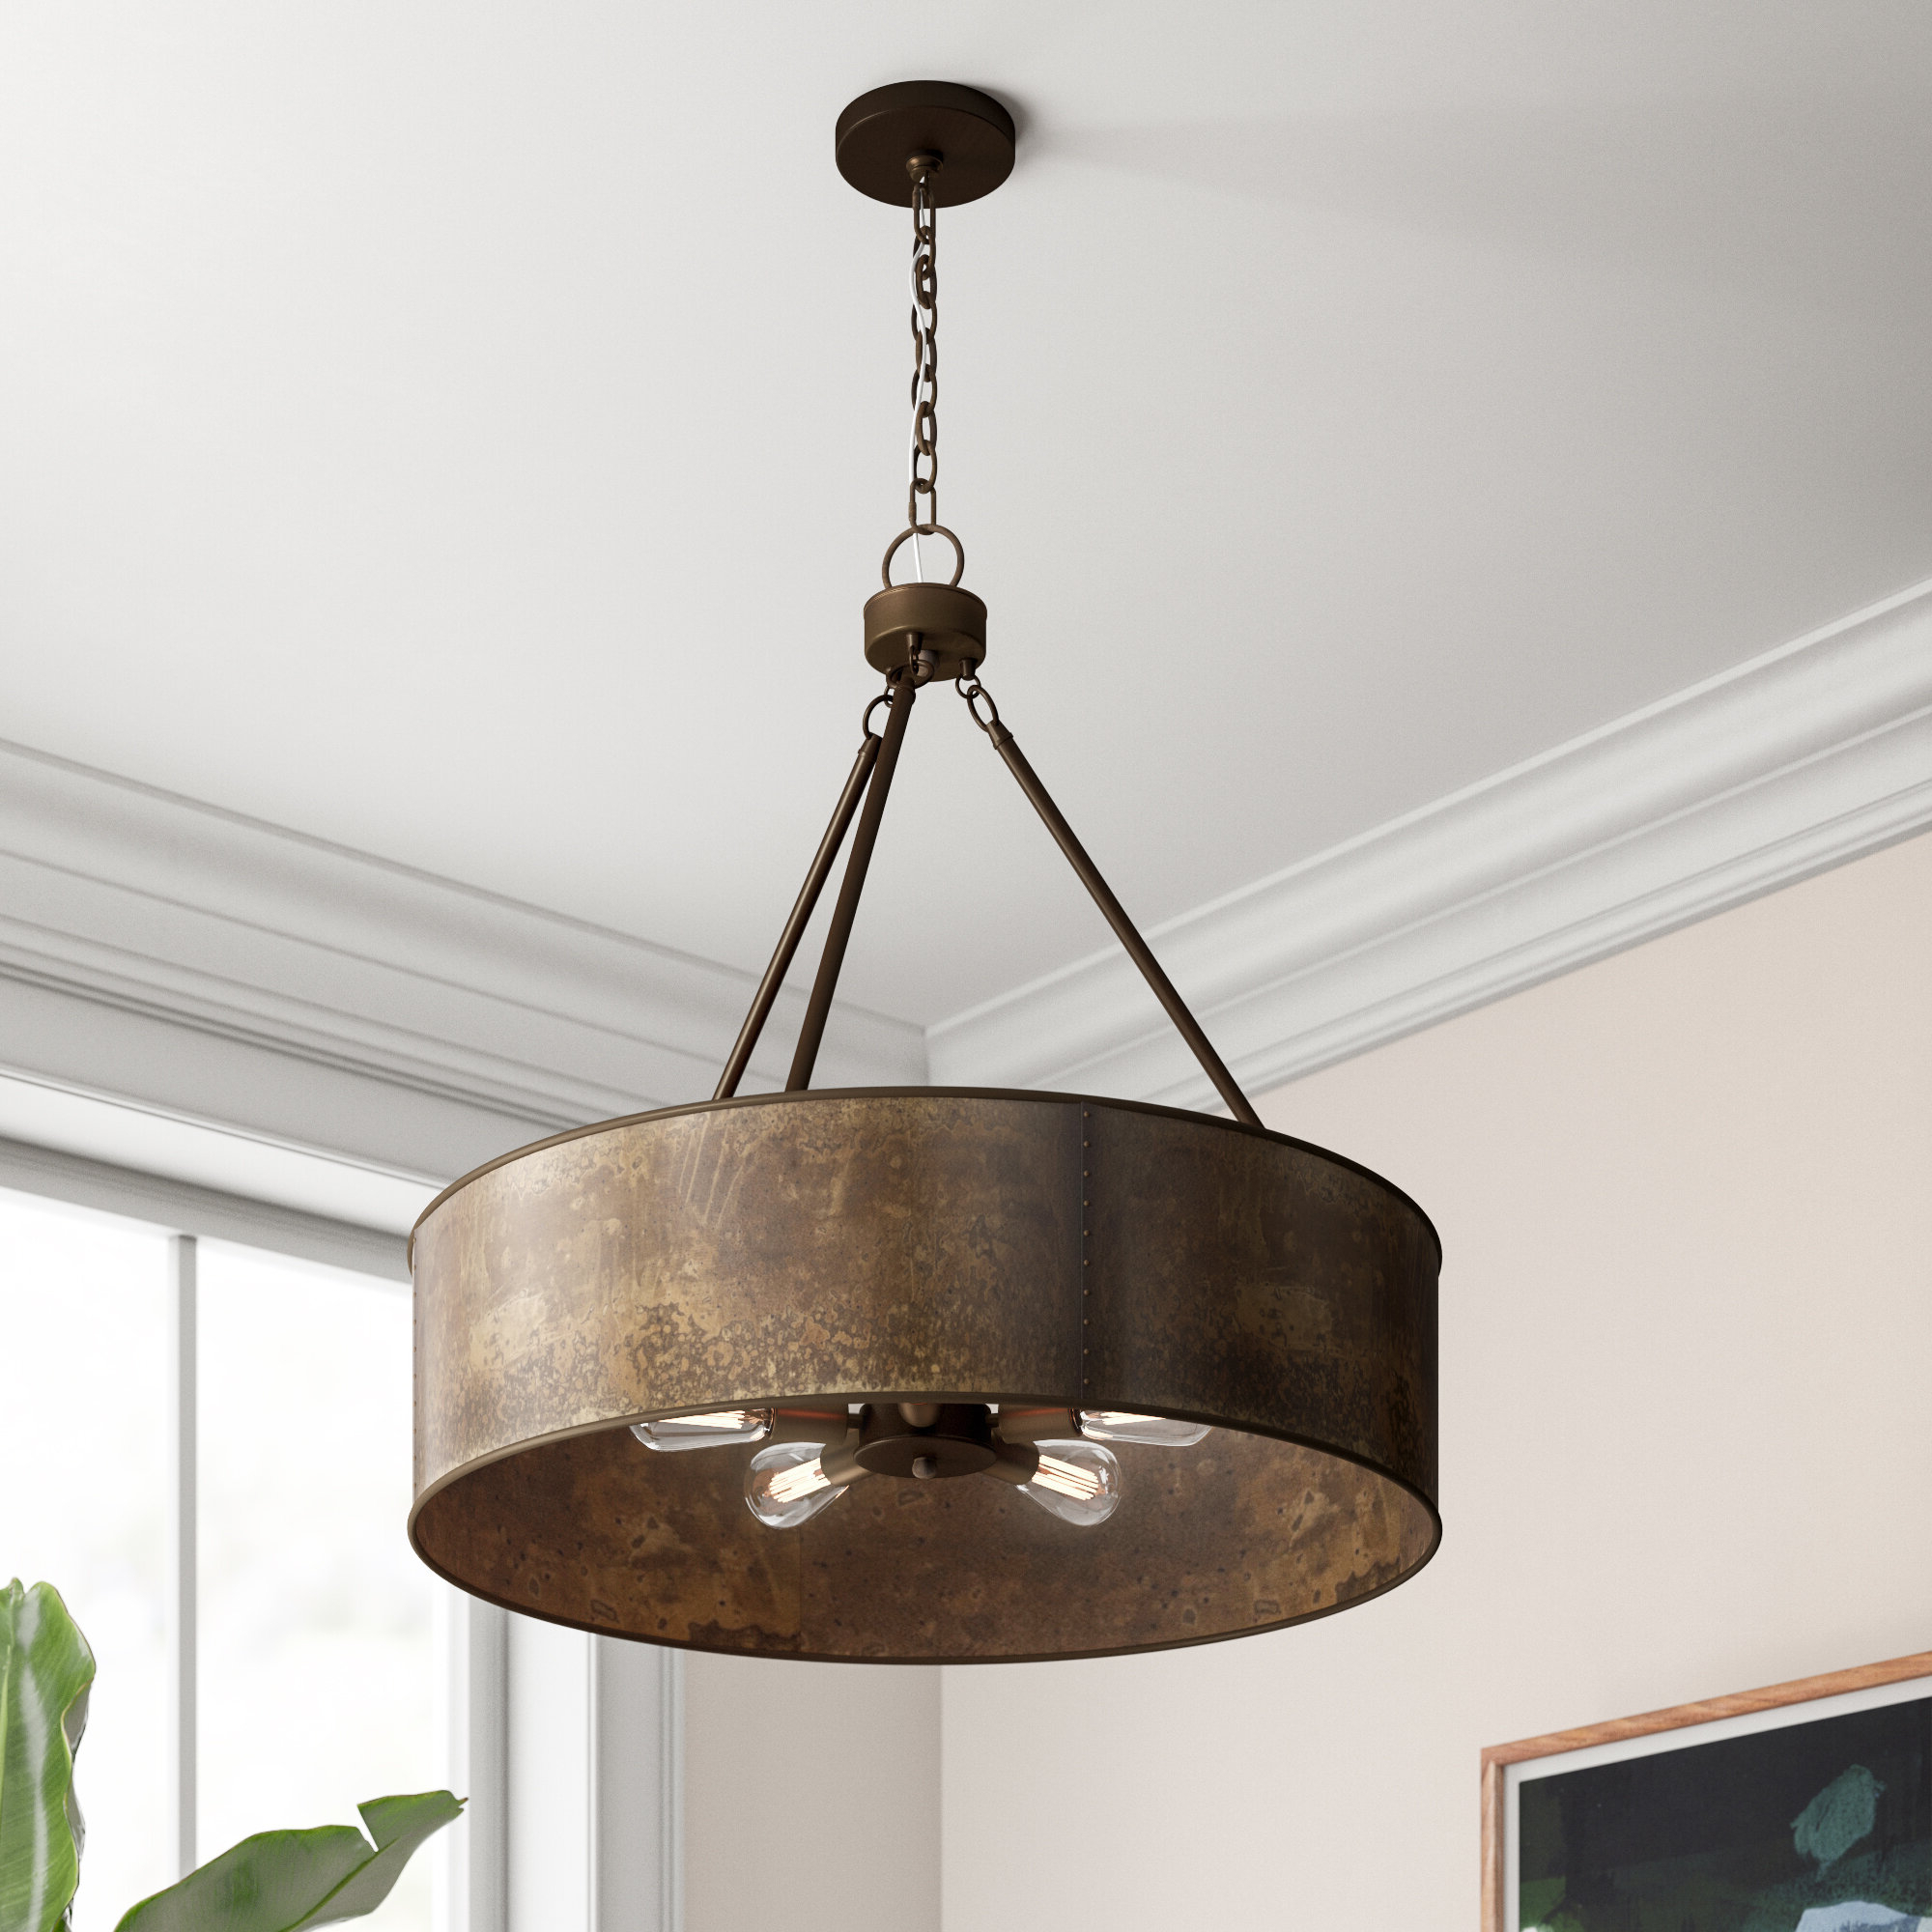 Harlan 5 Light Drum Chandeliers Intended For Famous Vincent 5 Light Drum Chandelier (View 18 of 20)